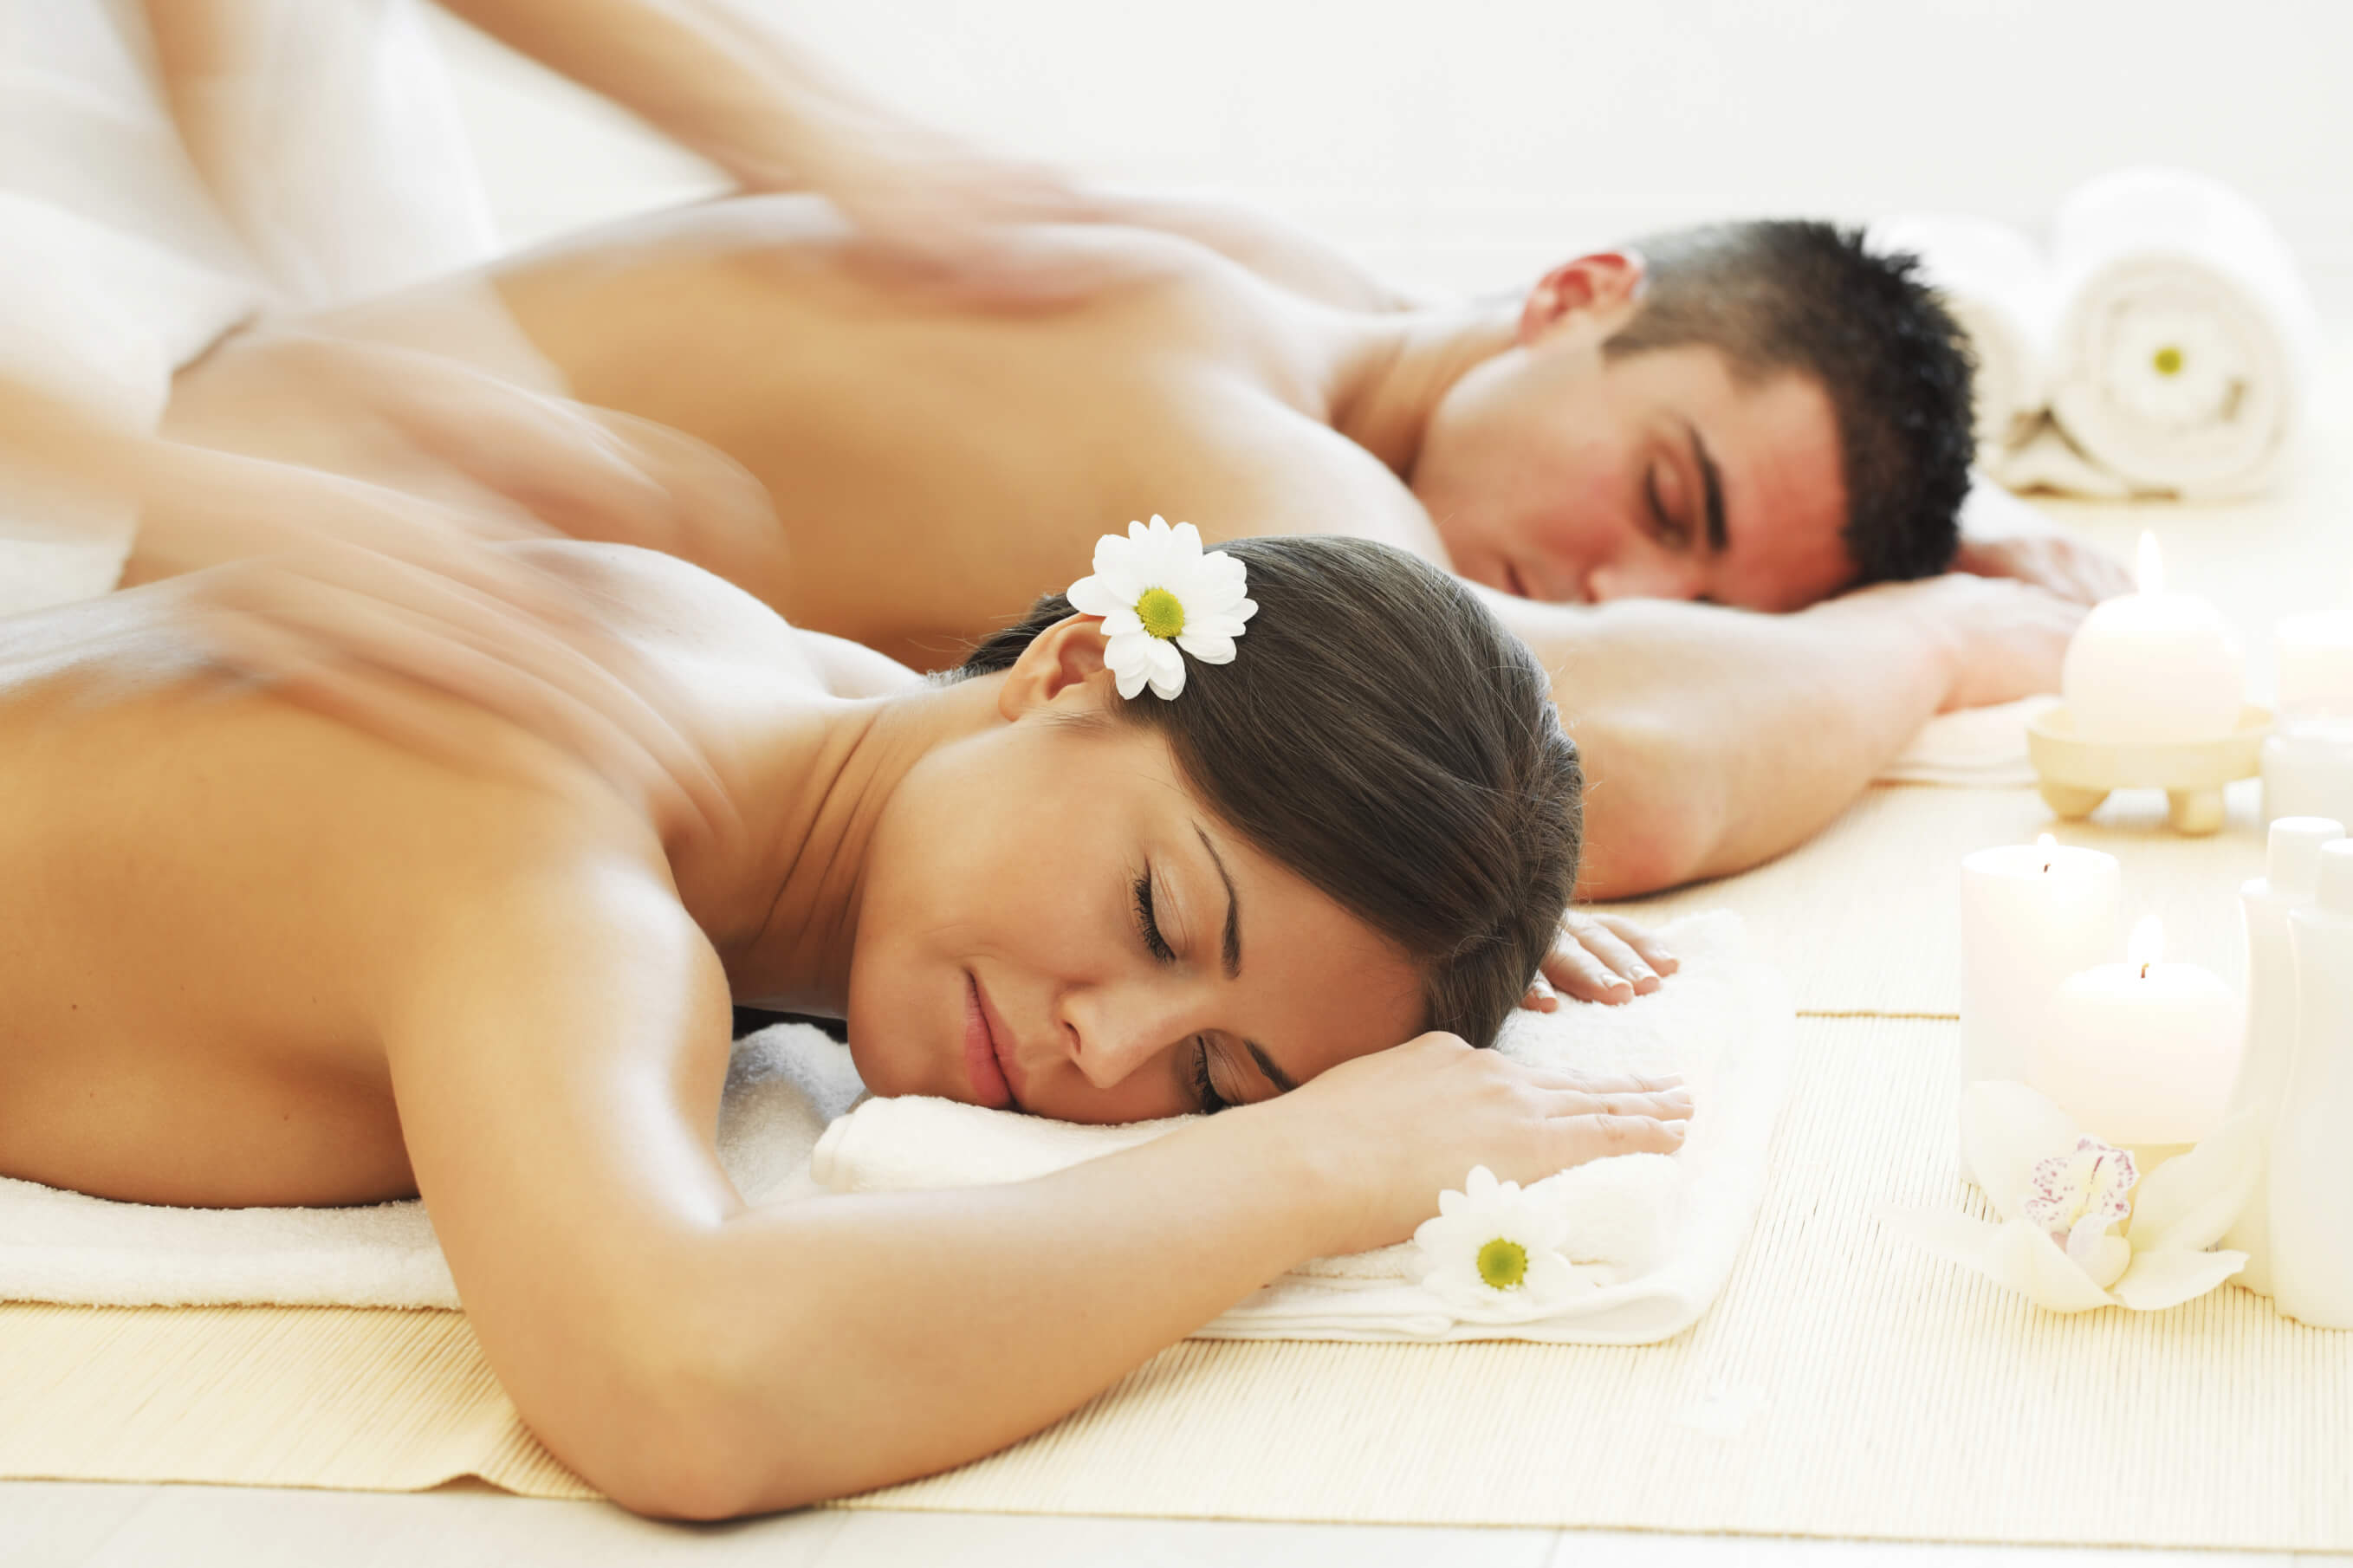 couples massage in white robes